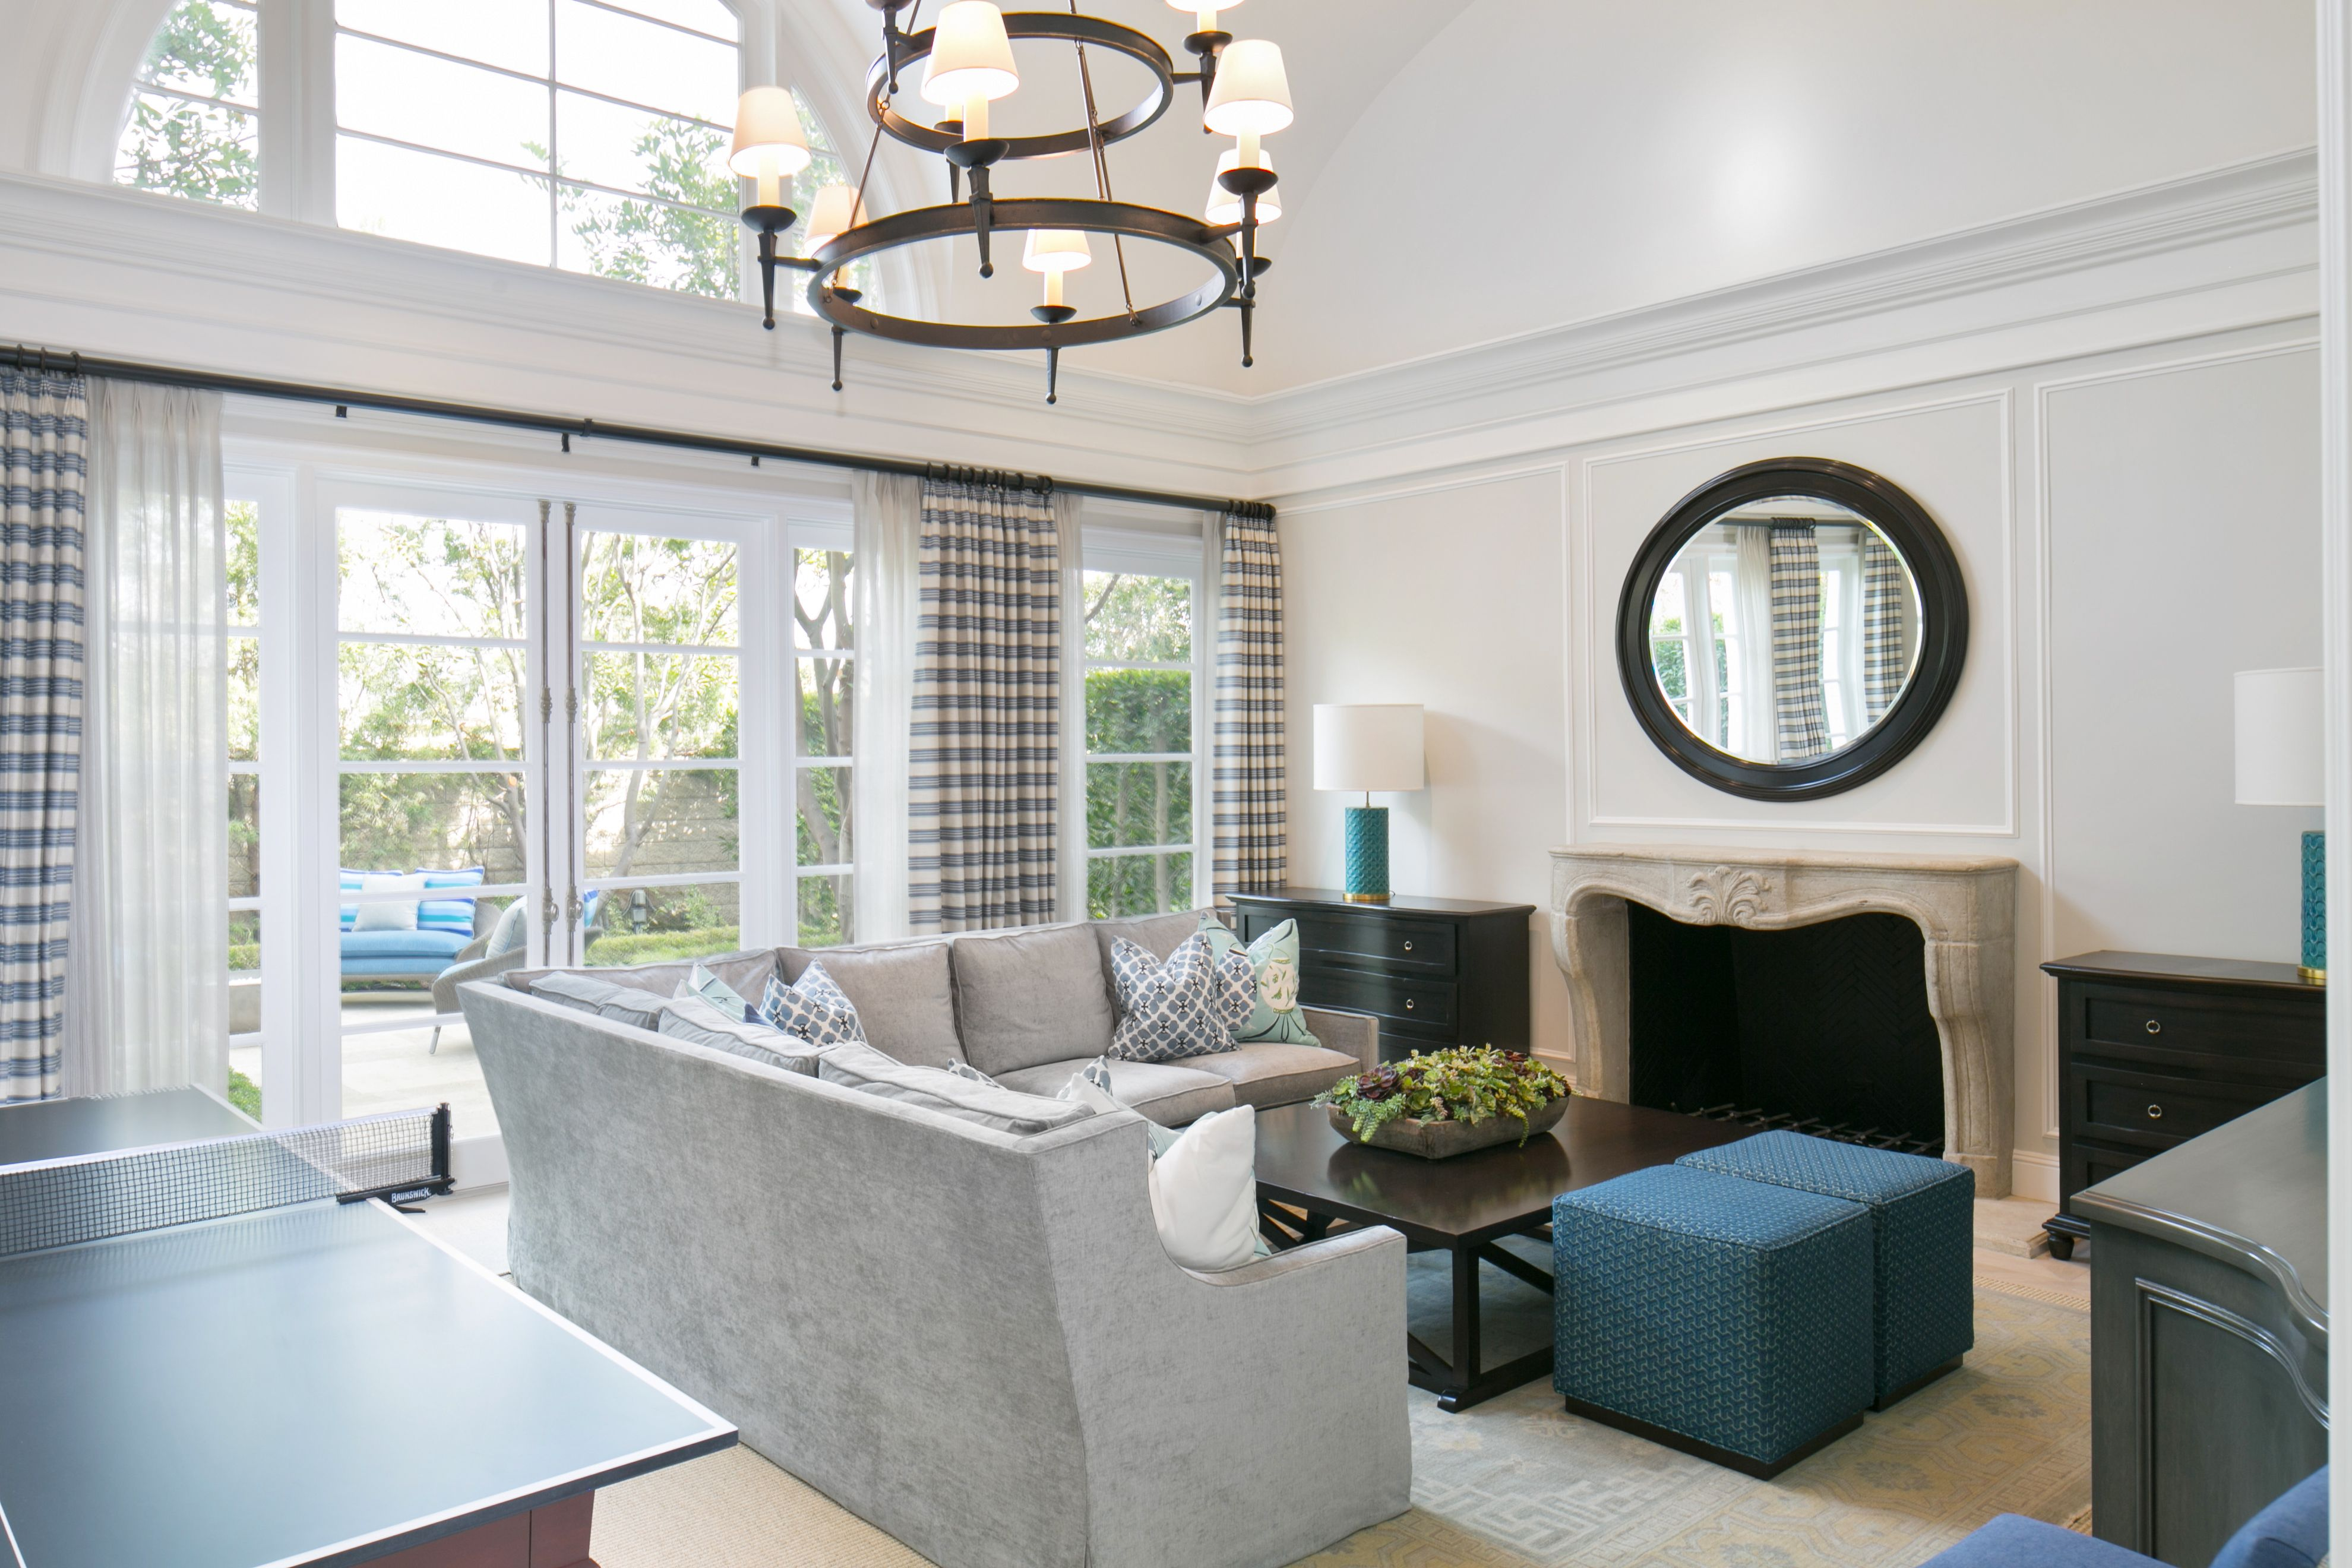 Transitional Living Room With Coastal Vibe And Blue: Coastal Blue Living Room + Great Room + Transitional Home